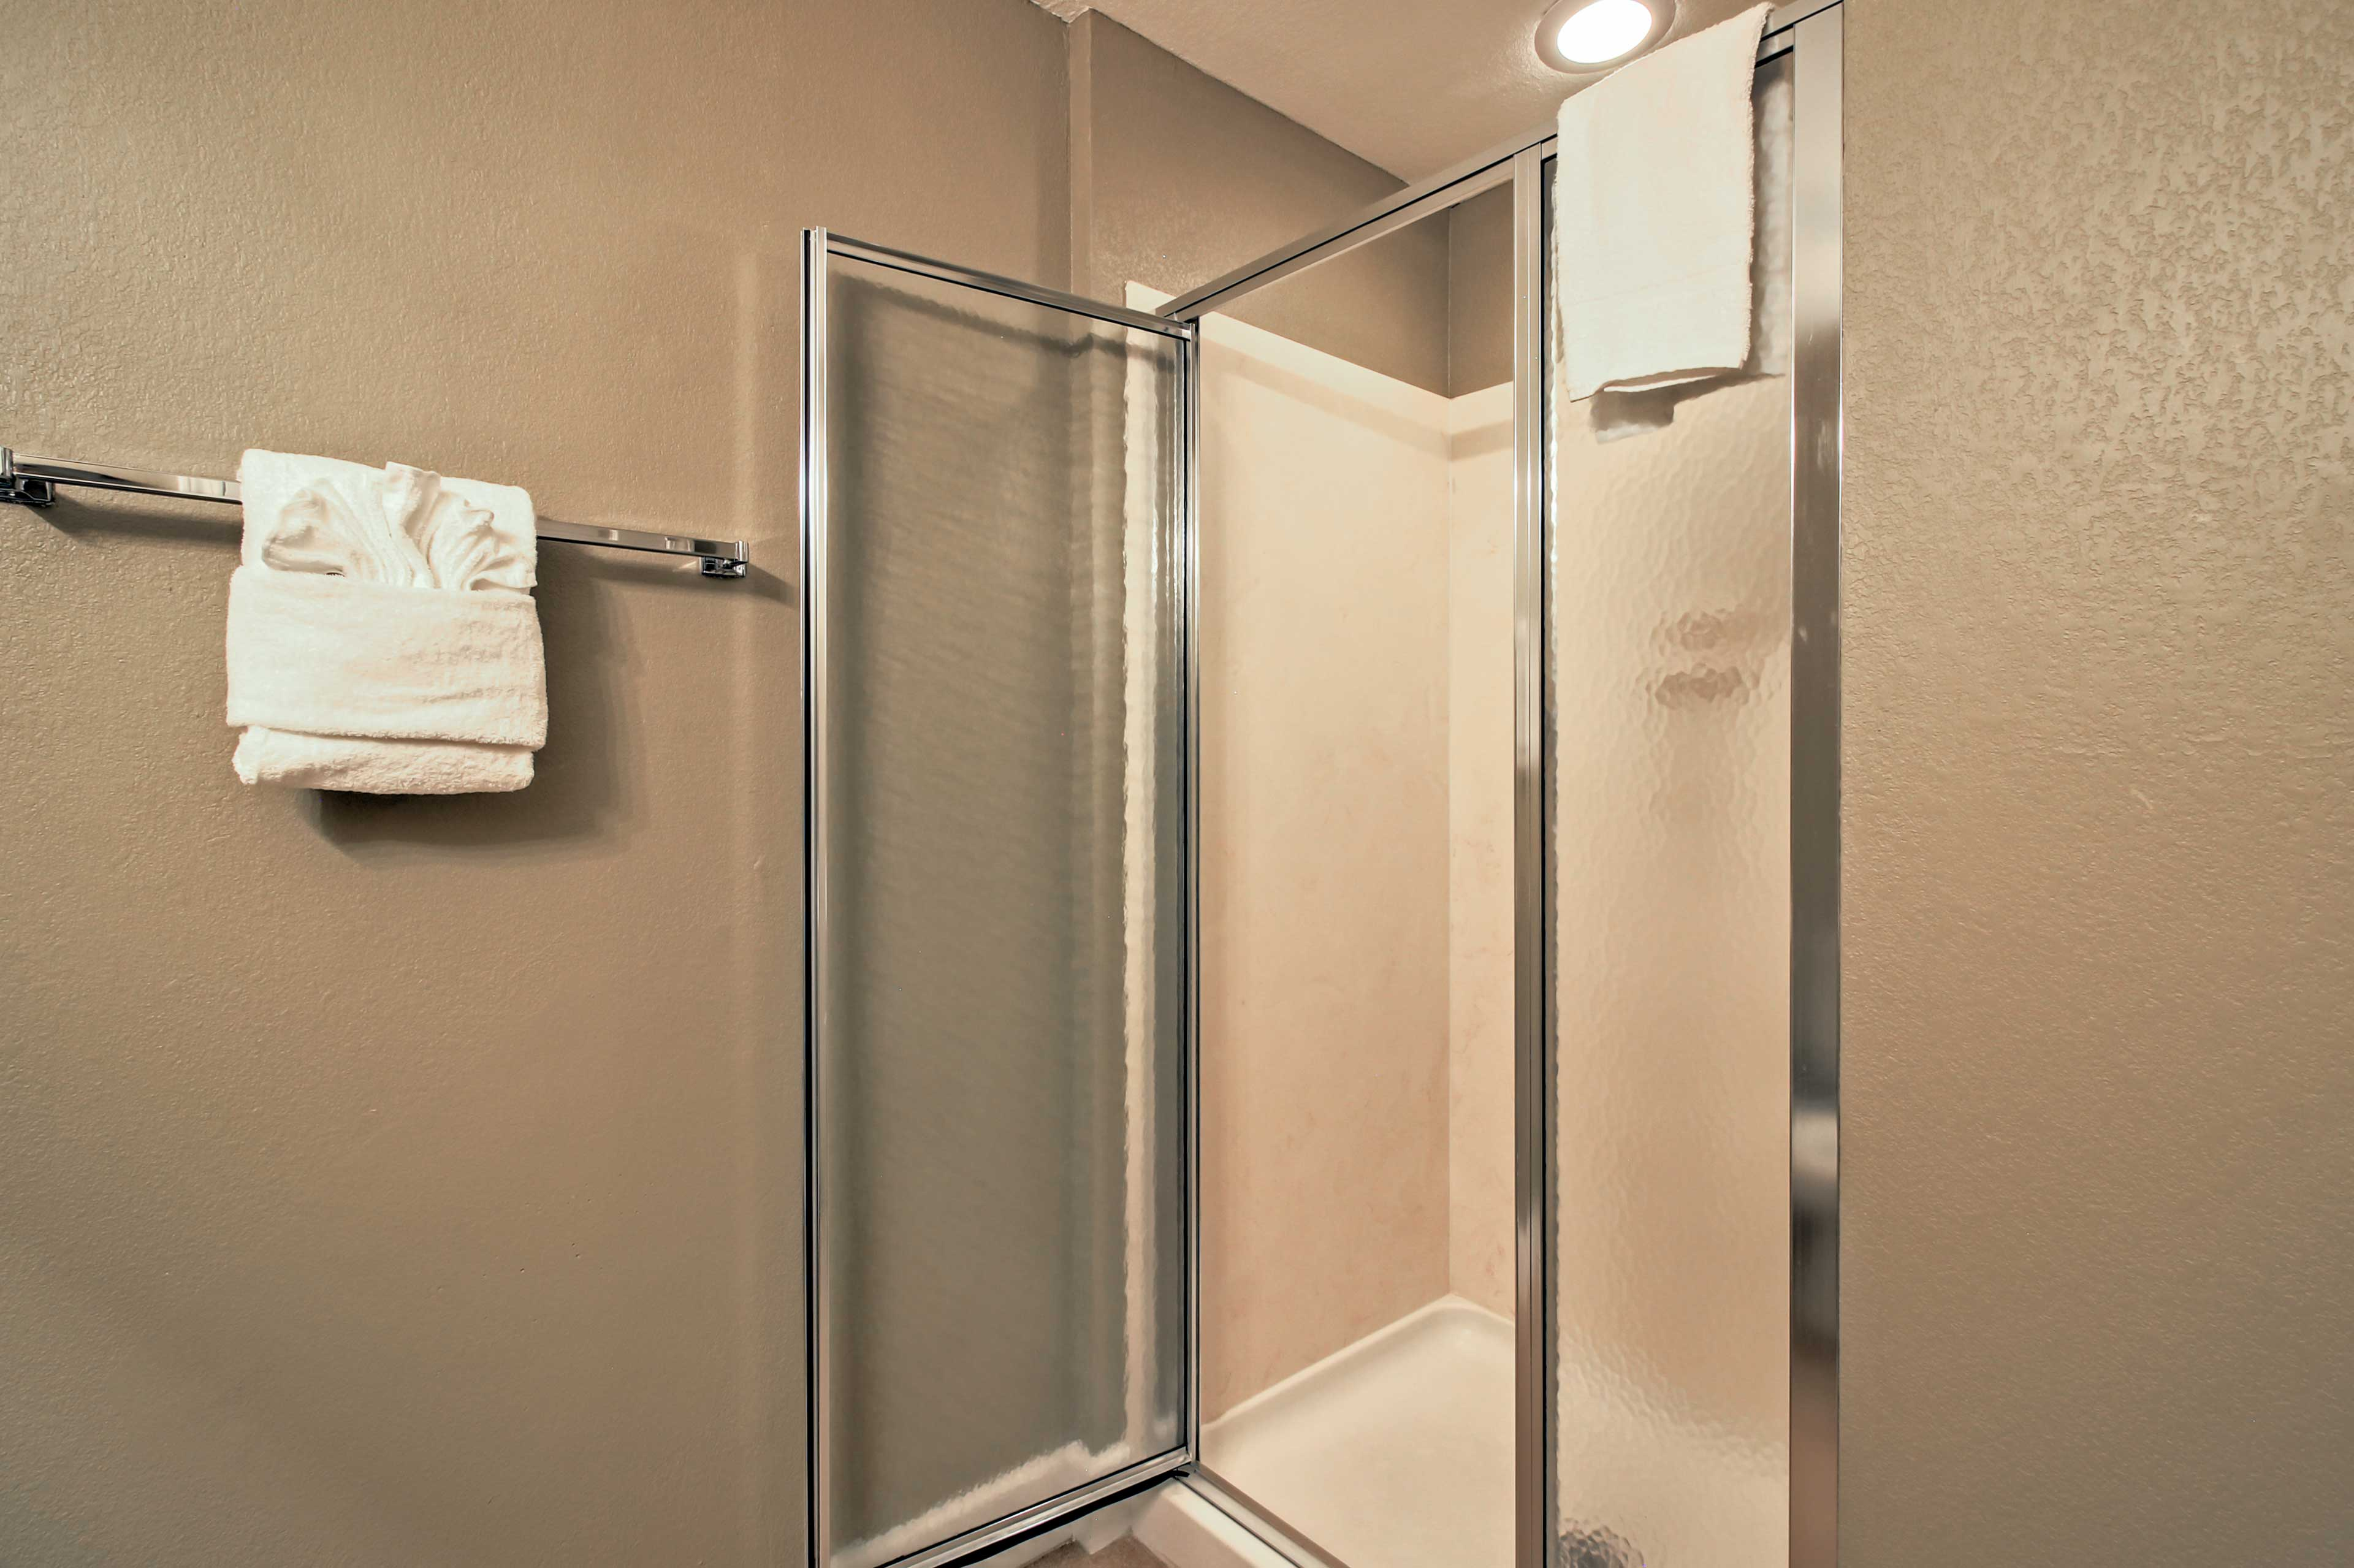 Rinse and refresh in the walk-in shower.